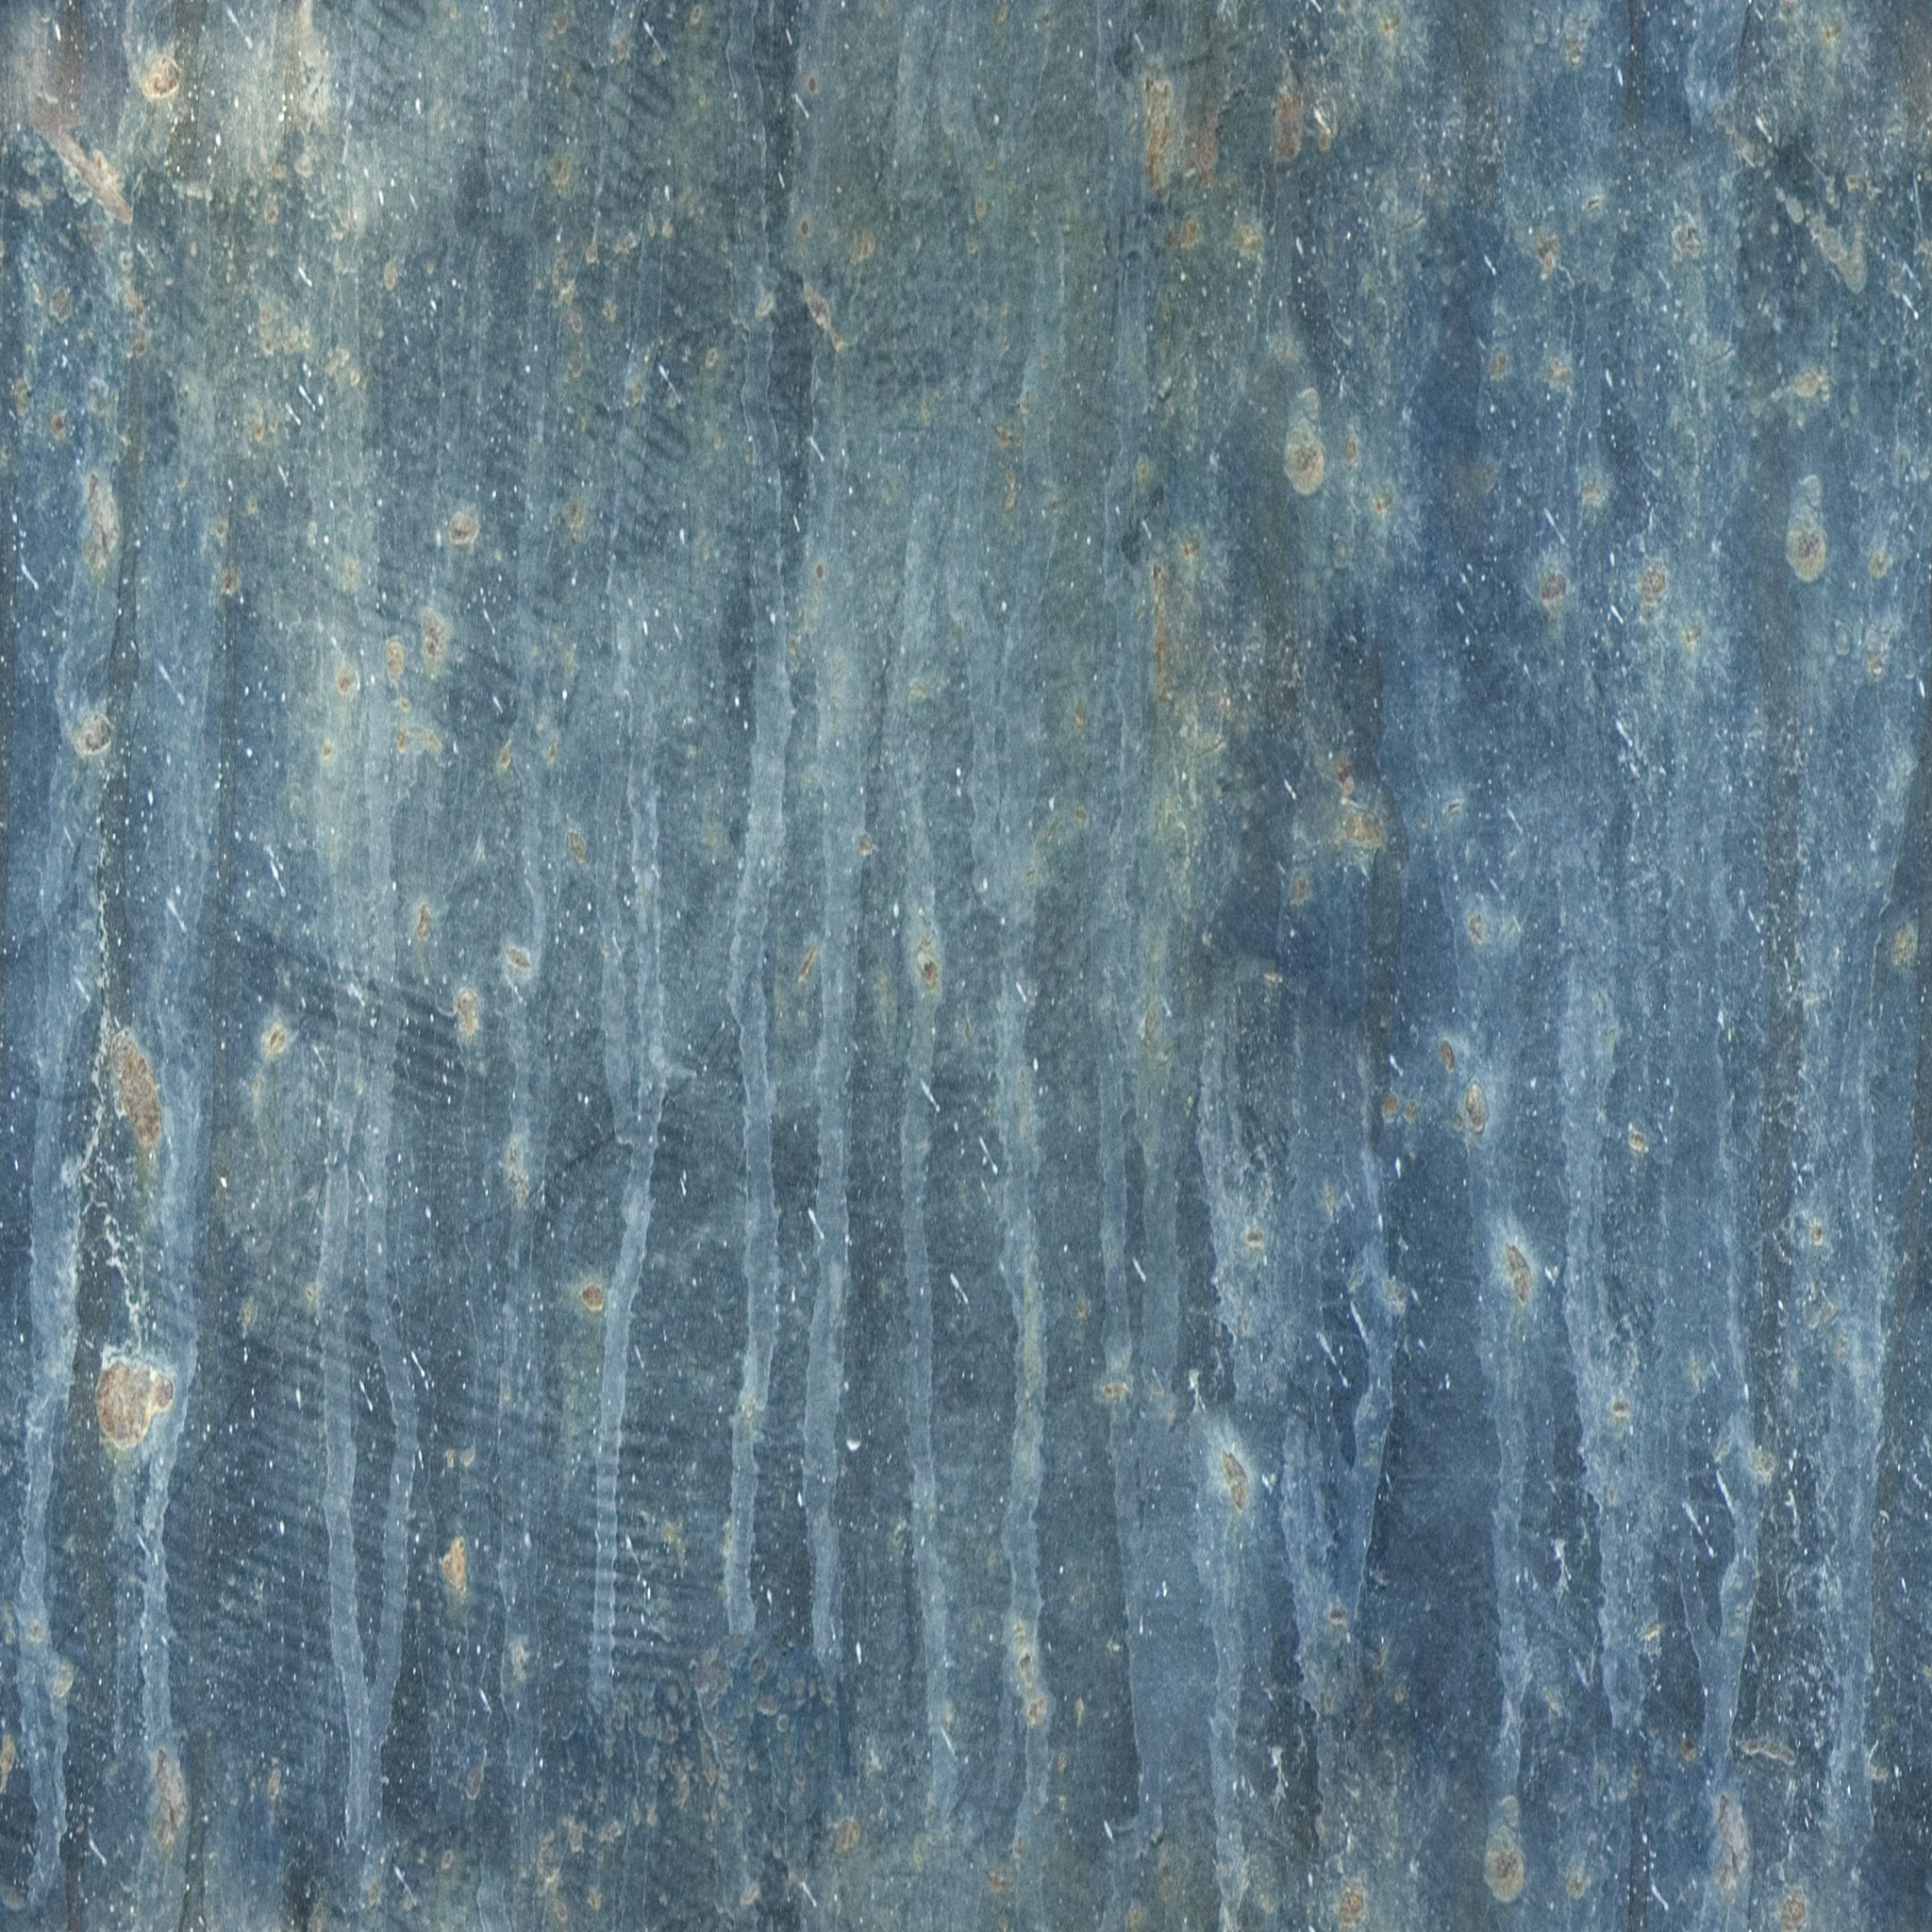 Blue Water Stained Metal.jpg